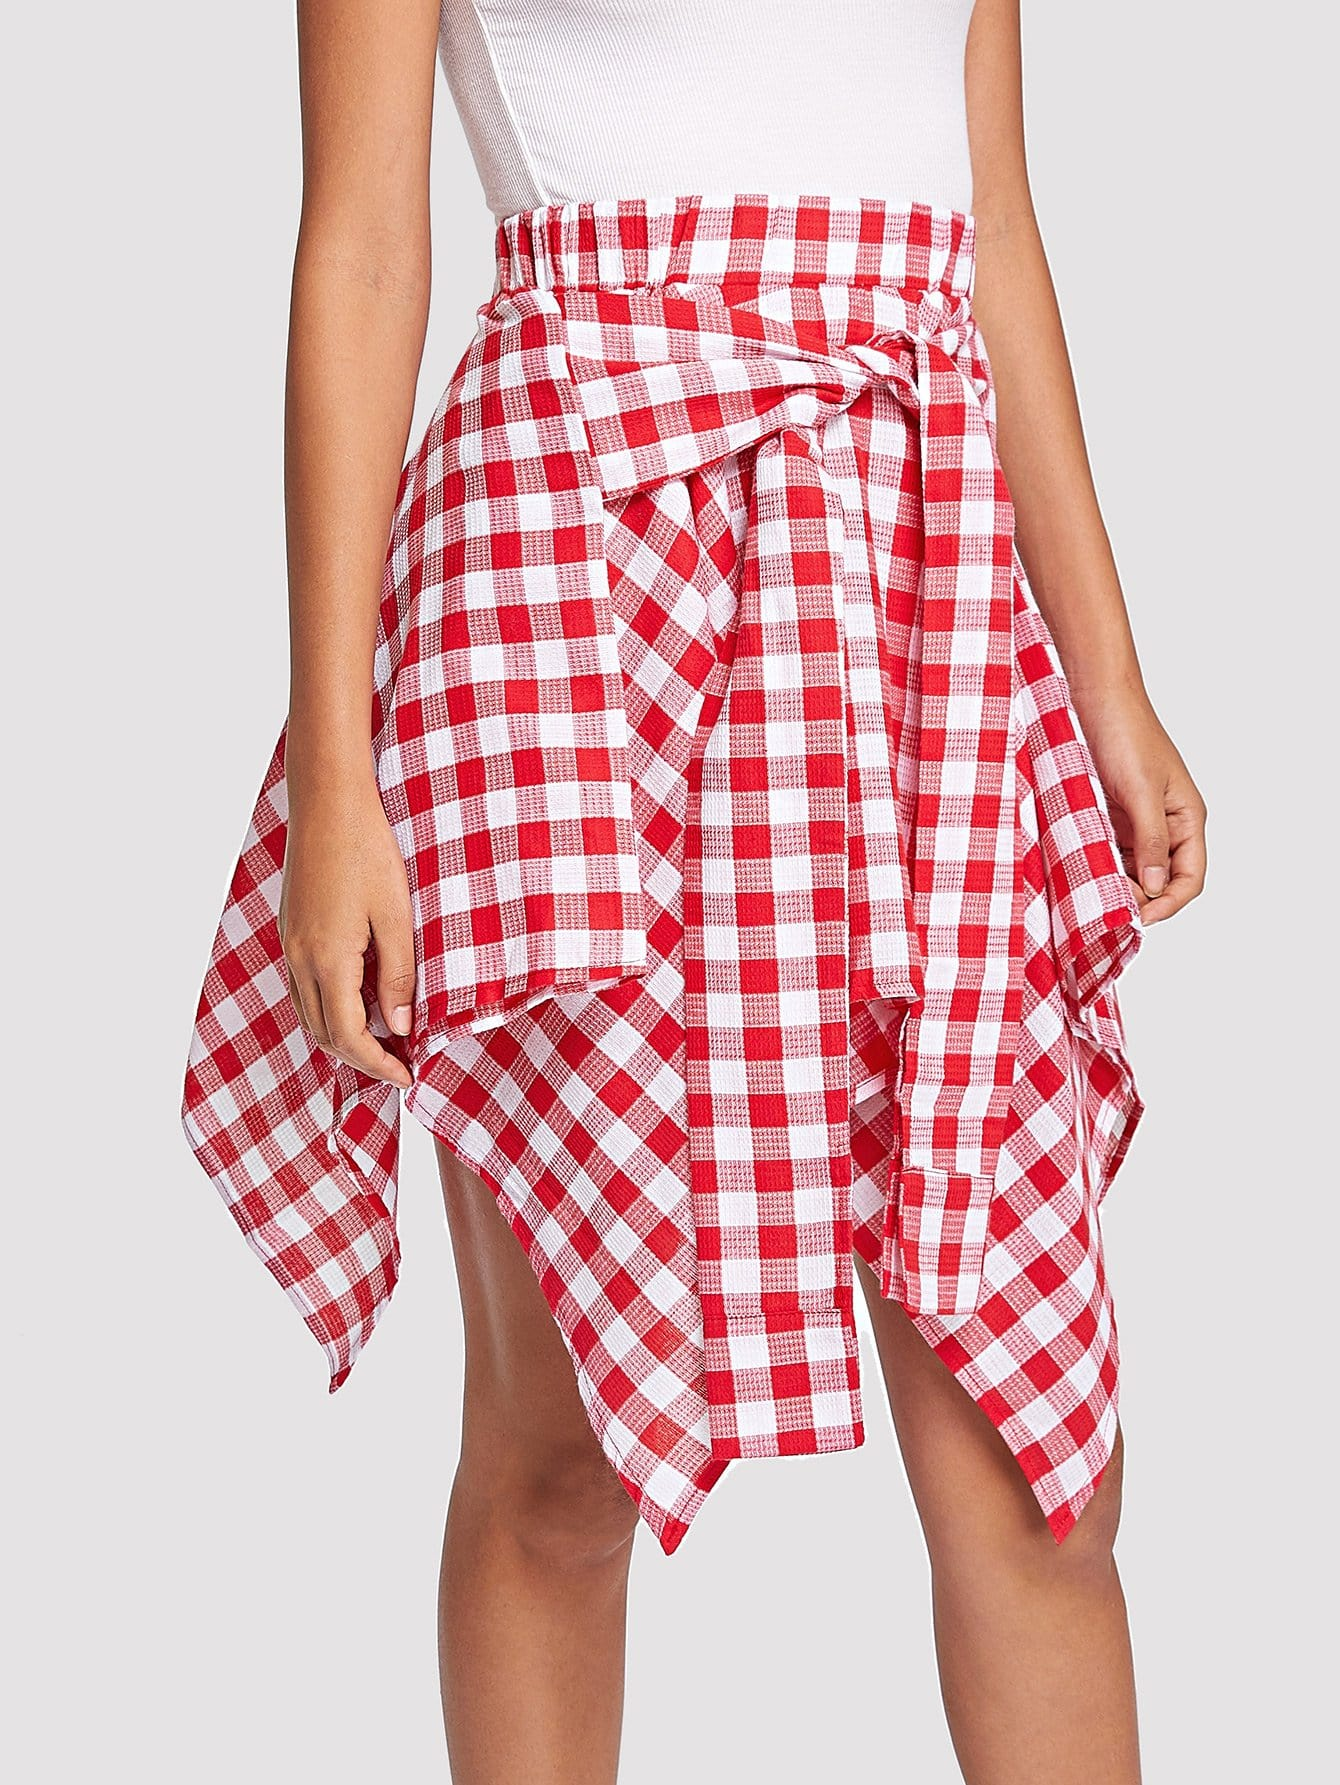 Knot Front Gingham Hanky Hem Skirt ruffle waist zip back scallop hem embroidered gingham skirt